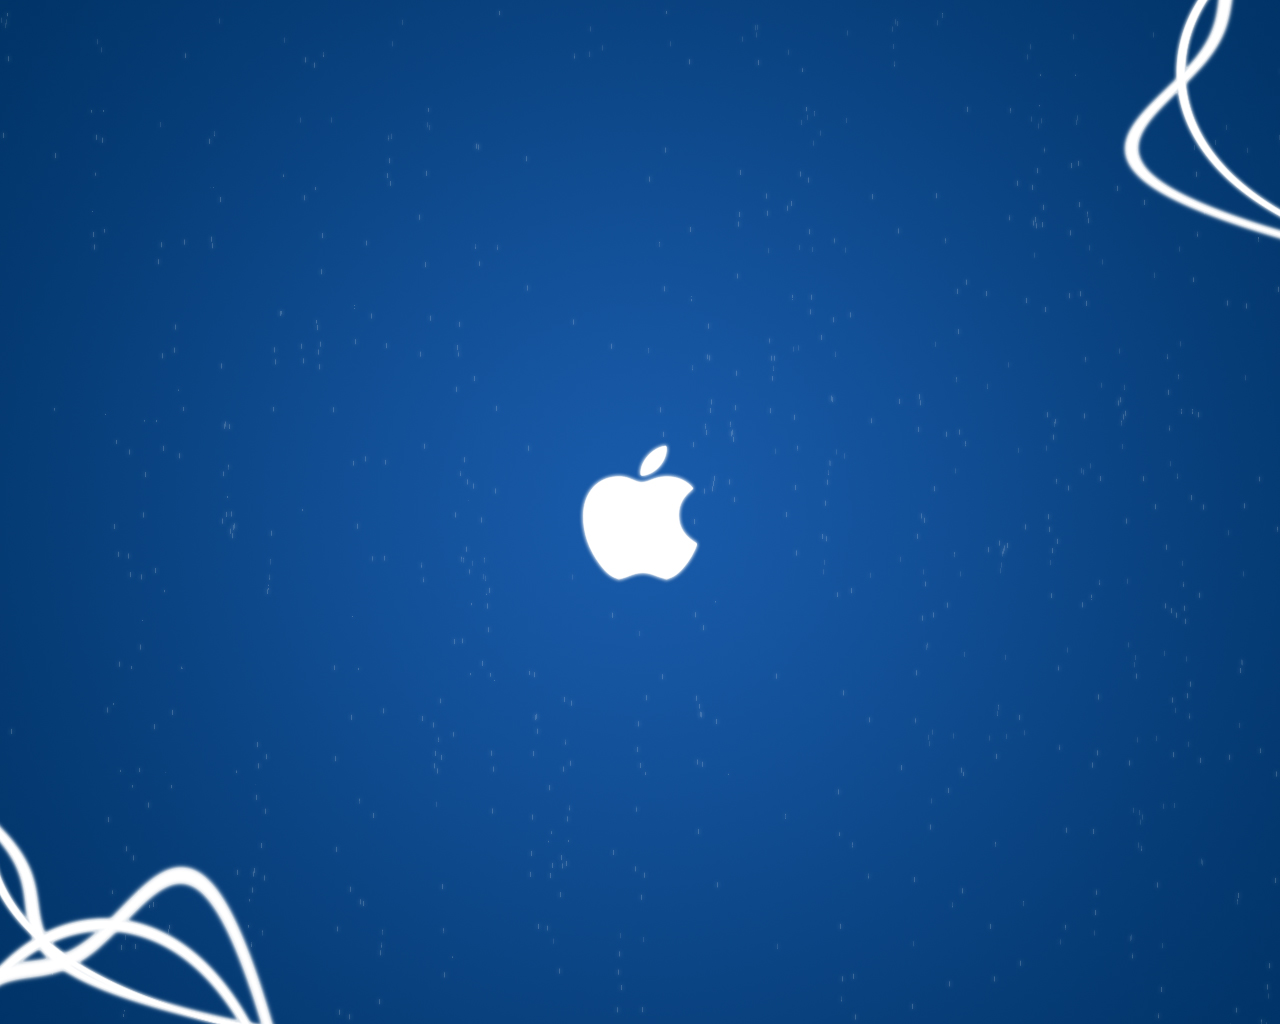 Apple images apple logo hd wallpaper and background photos 41151